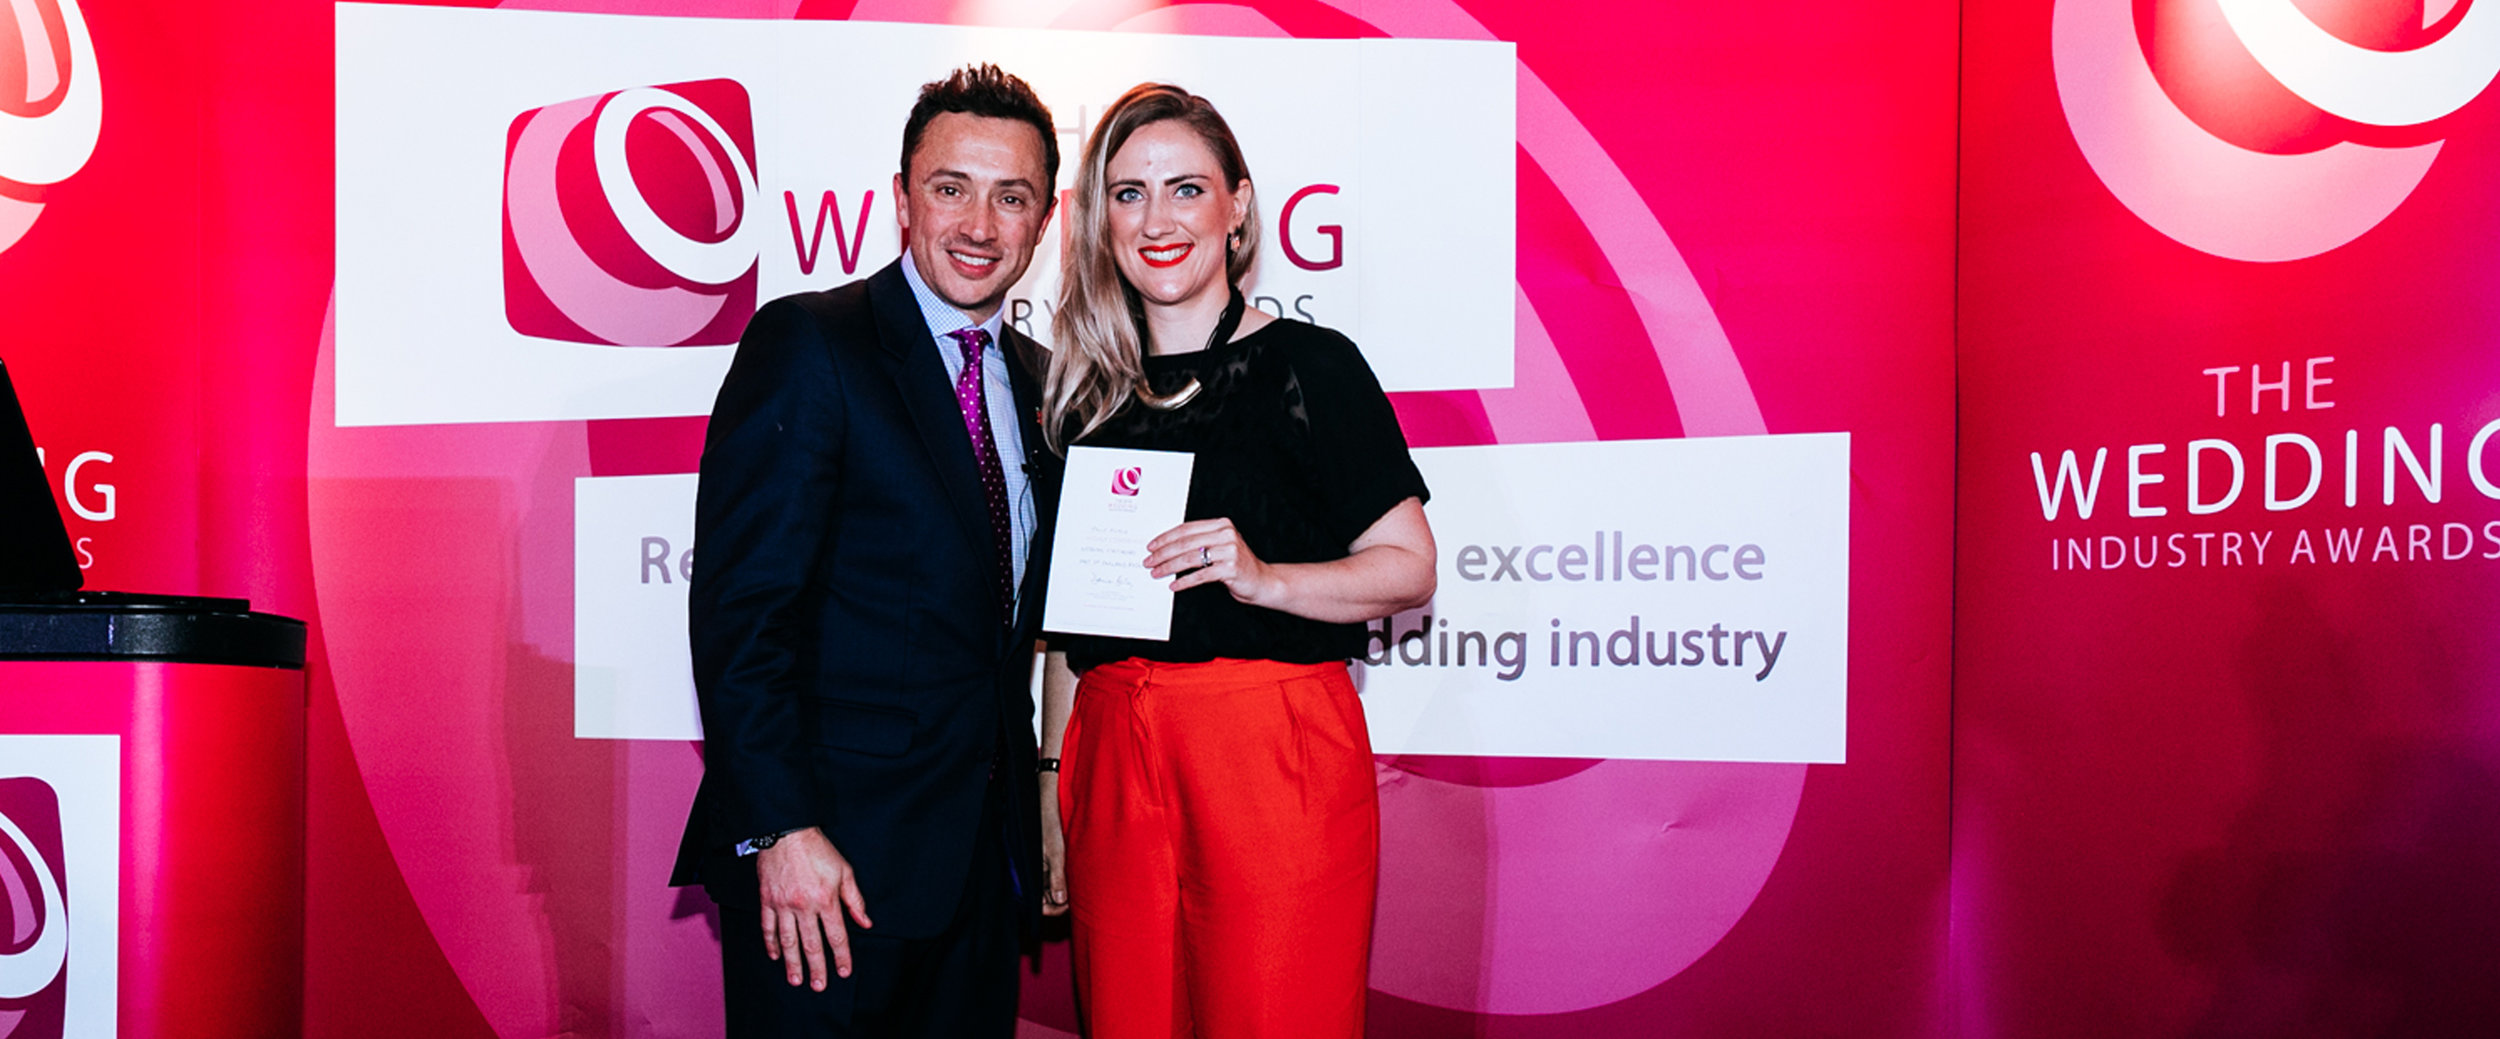 High Commended 'Stationery' for East of England at   The Wedding Industry Awards 2018